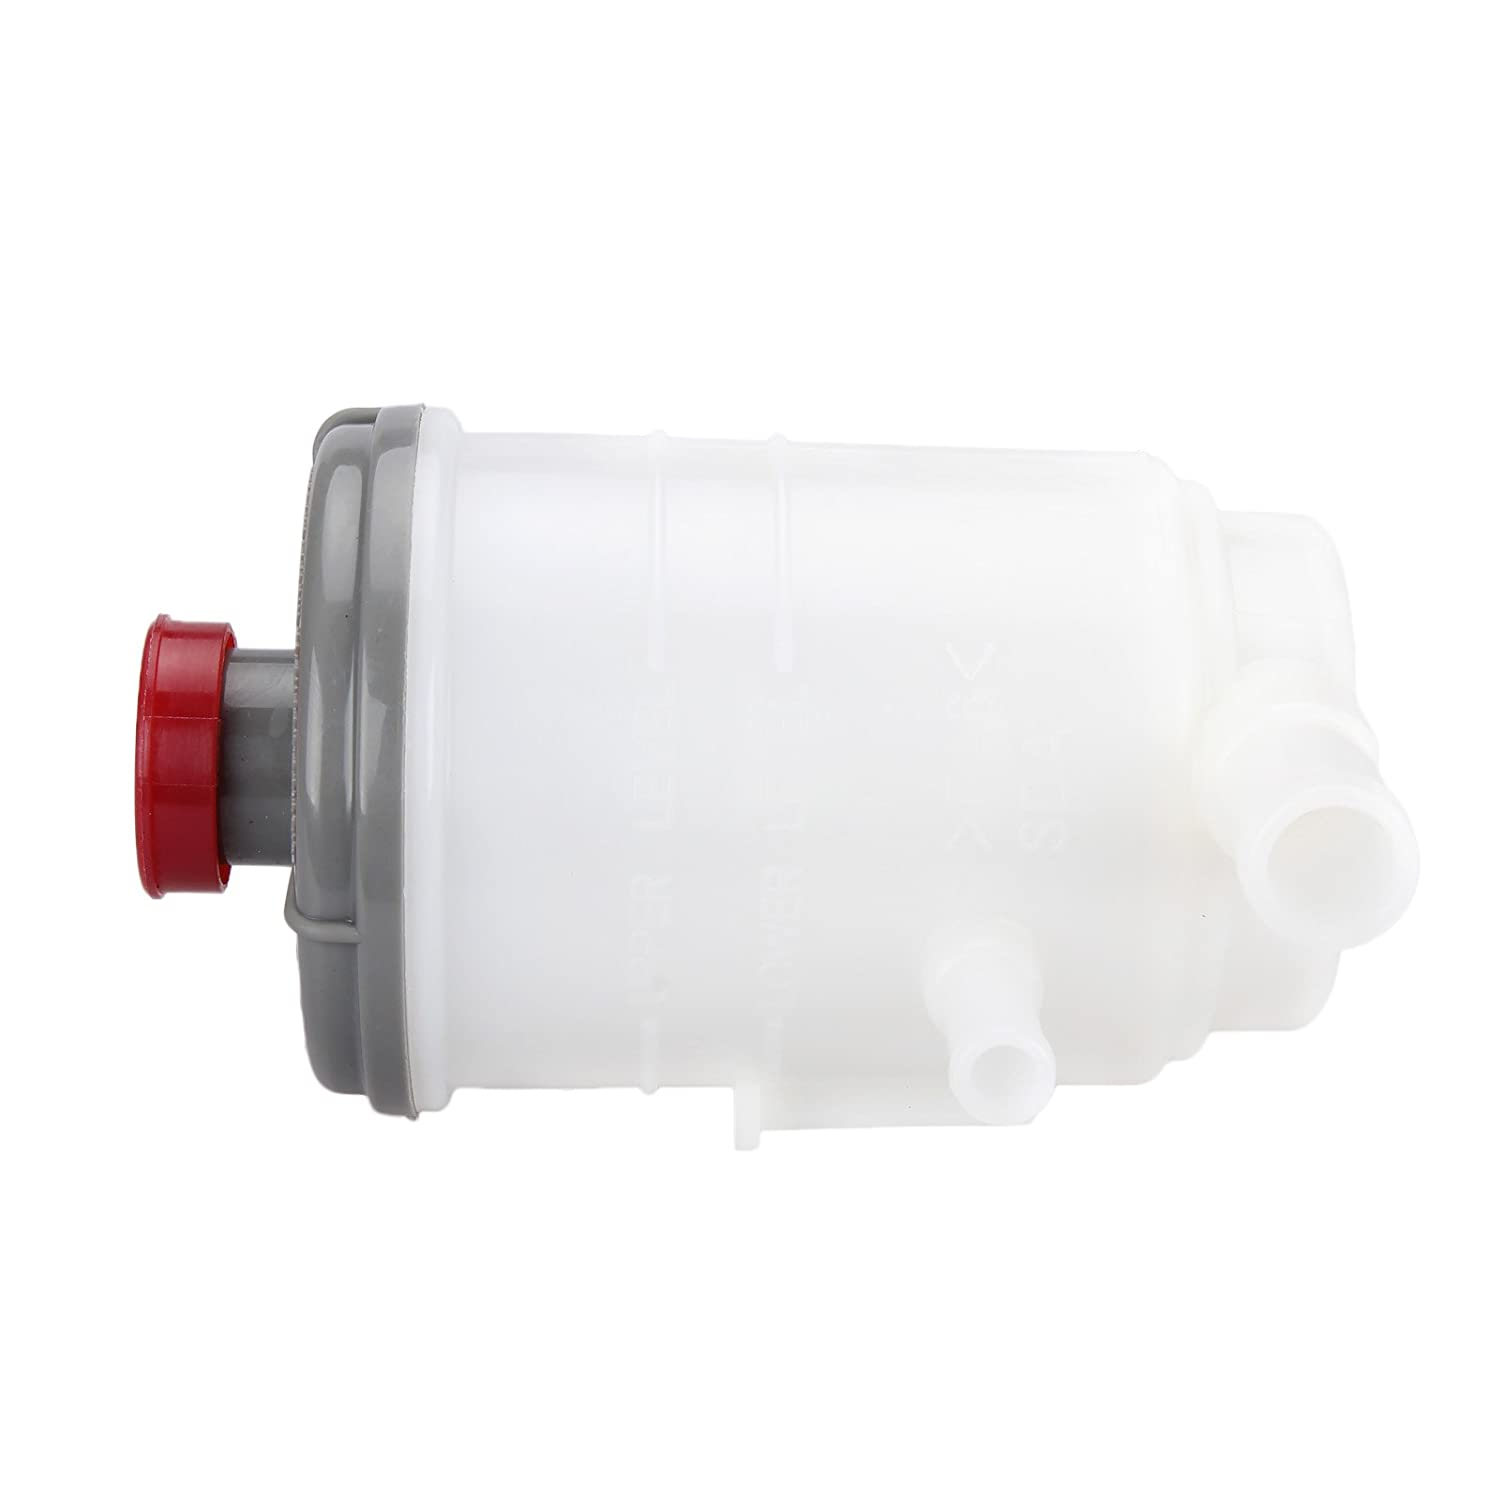 Power Steering Pump Reservoir 53701 SDA A01 For Honda Accord 03-07 From Madlife Garage